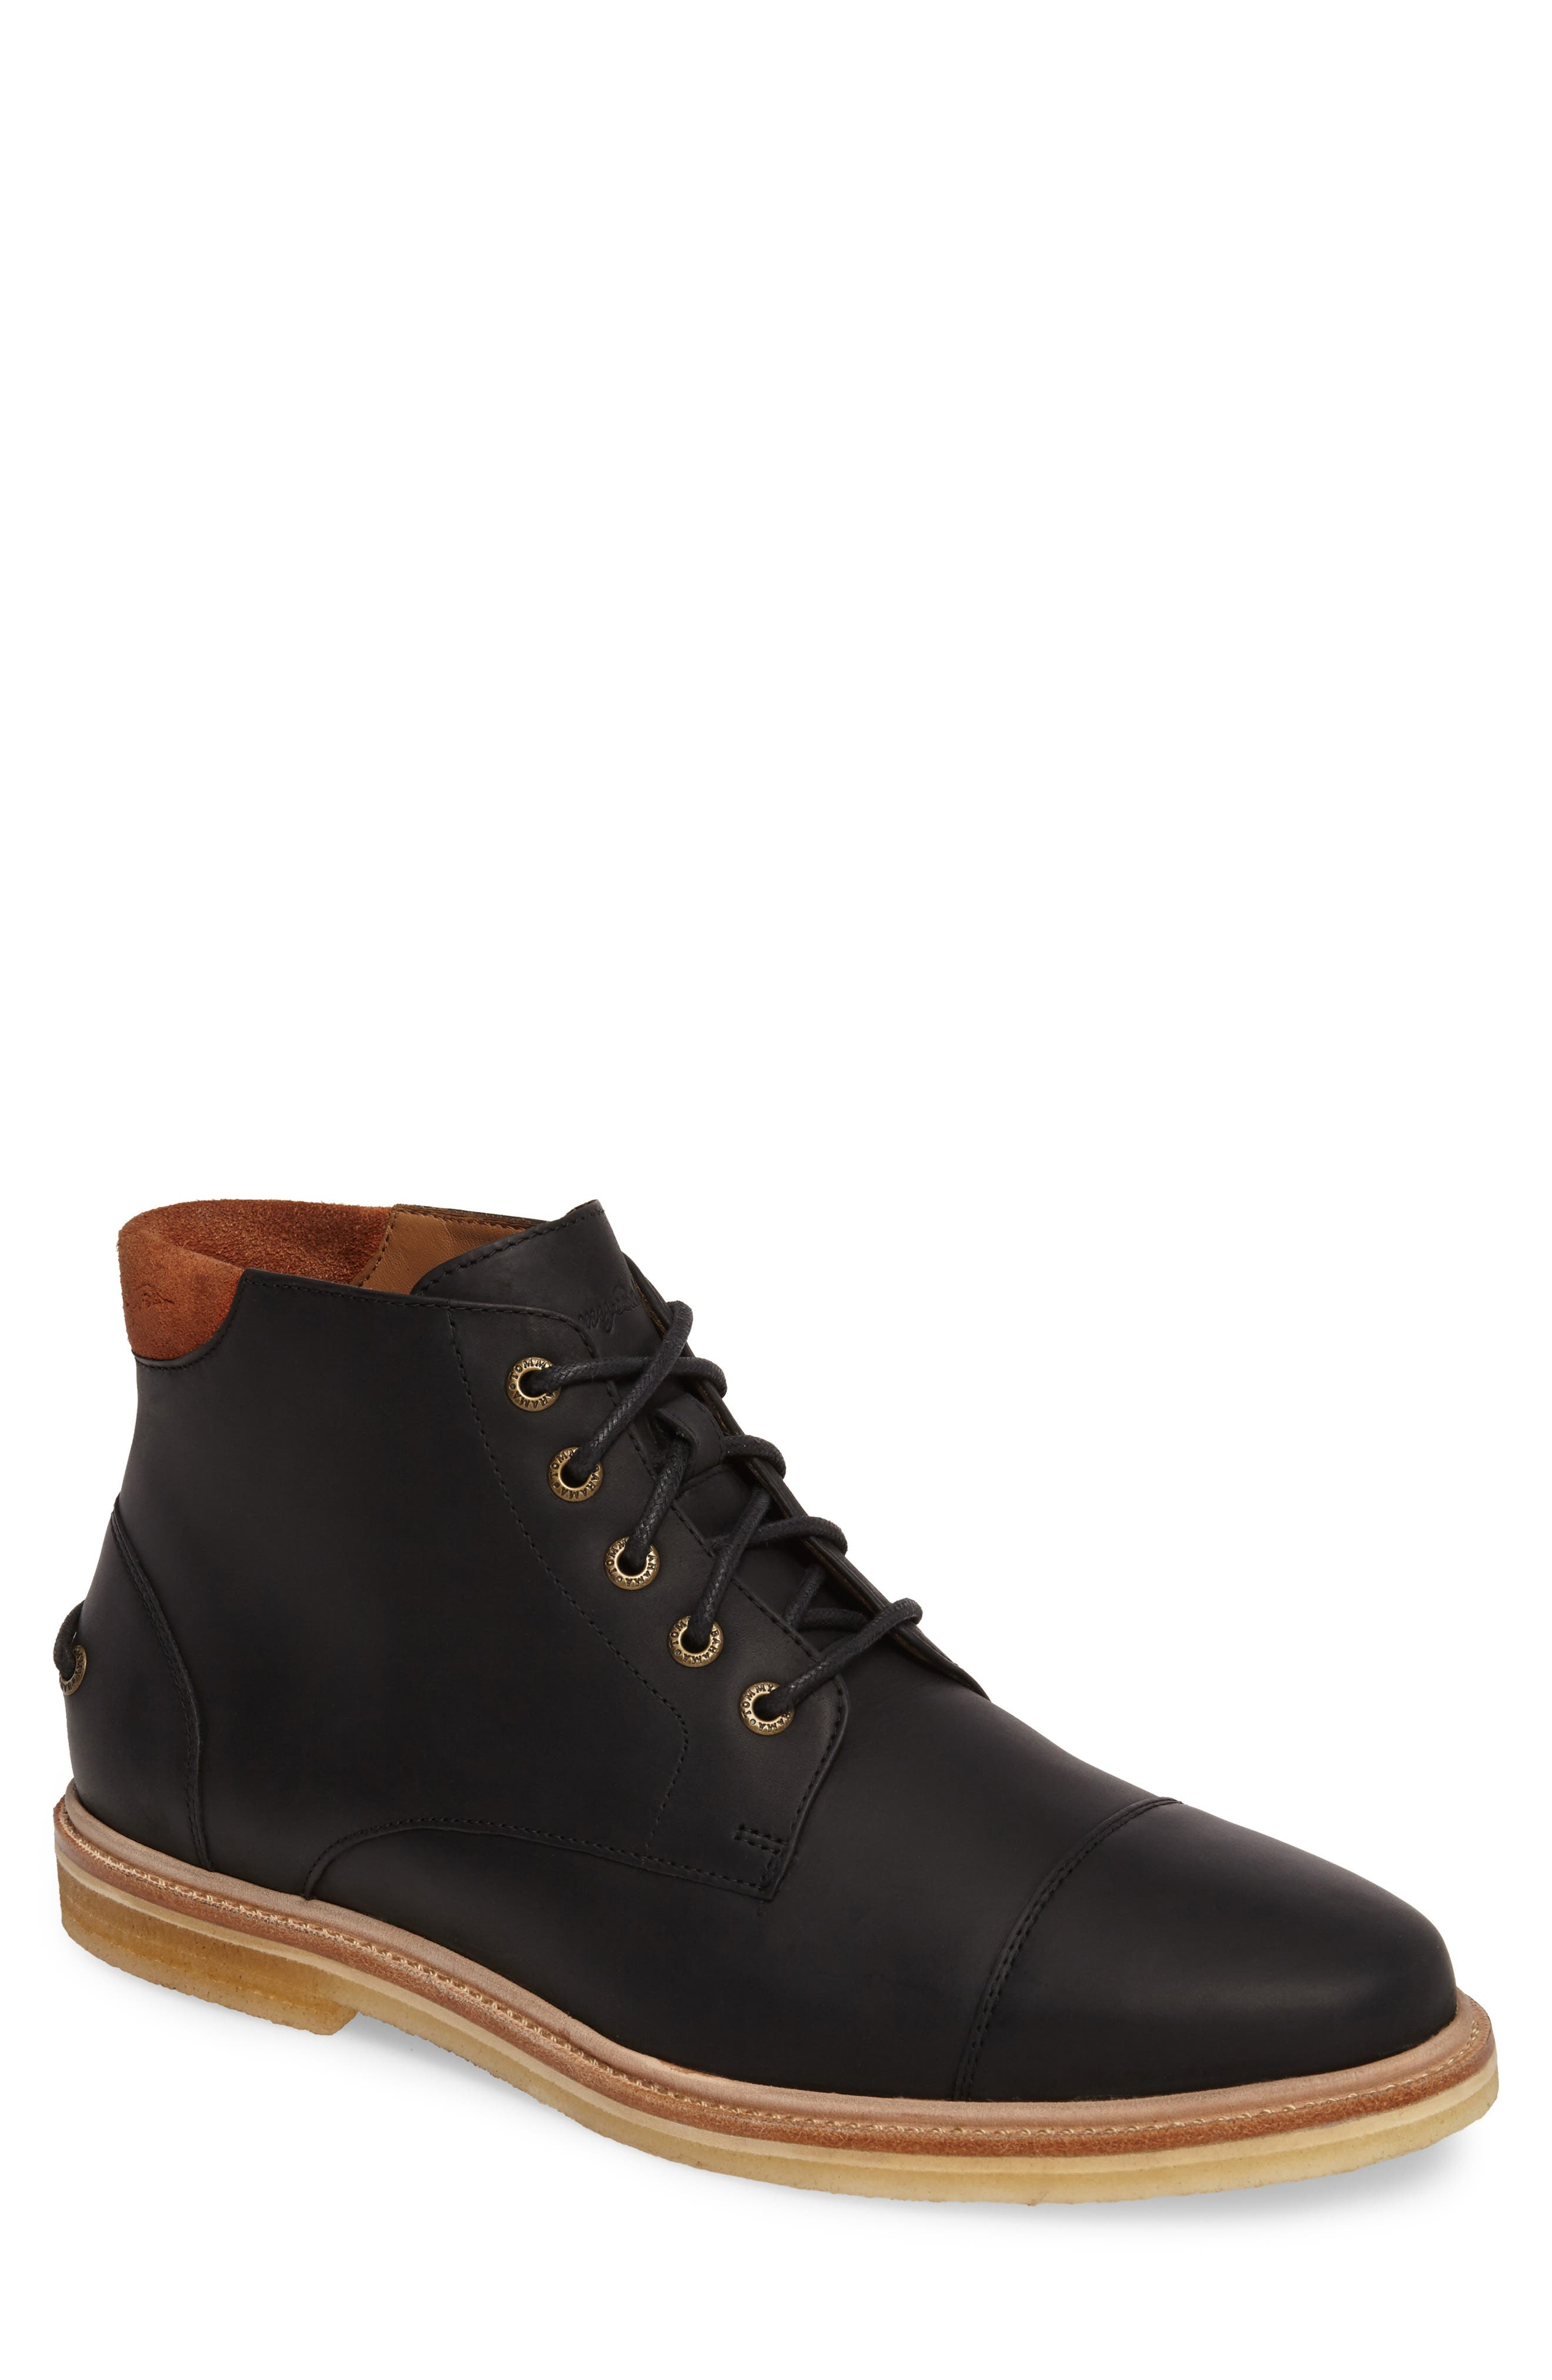 Argon Blooms Cap Toe Boot,                         Main,                         color, 001